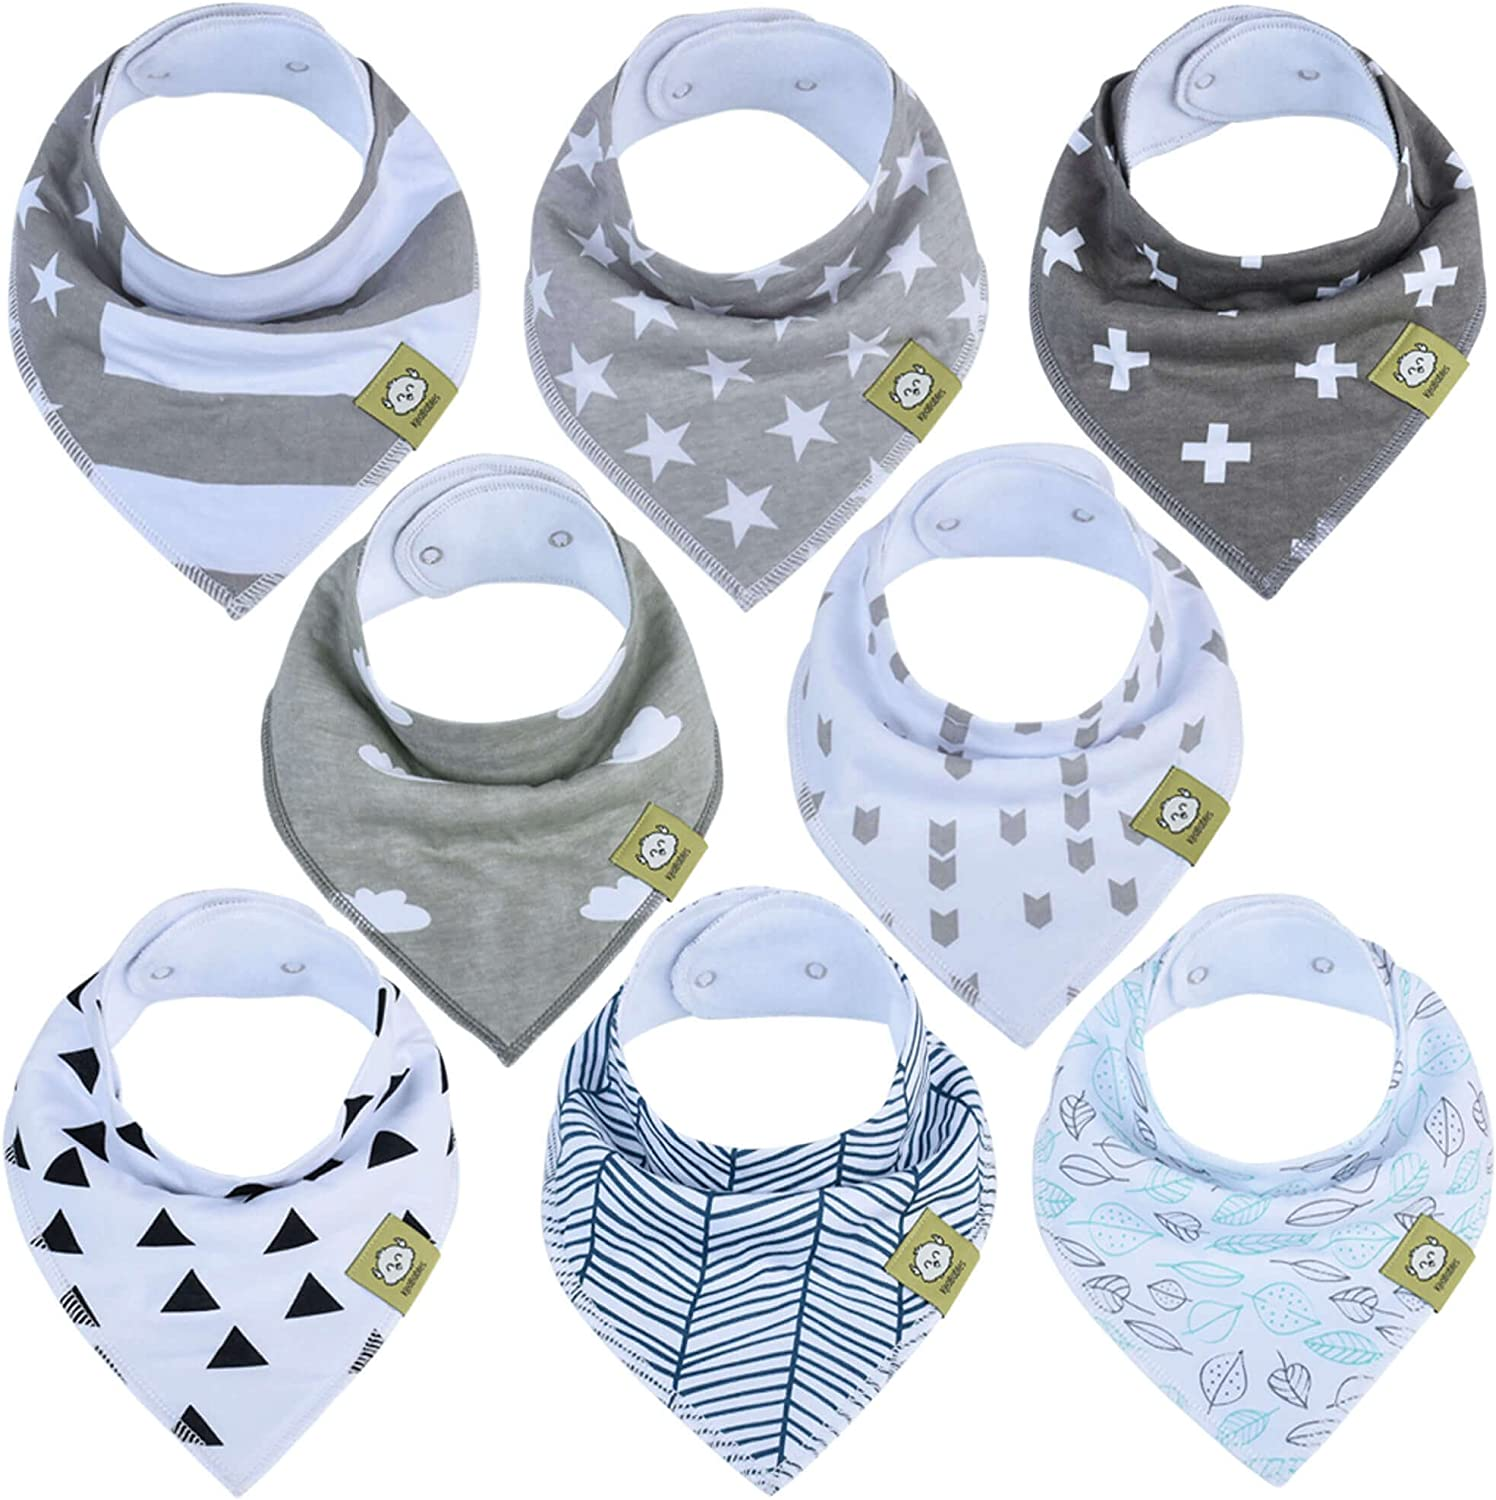 Baby Bandana Dribble Bibs for Boys /& Girls Unisex Feeding Bibs,10 Pack Cotton Super Soft Absorbent 2